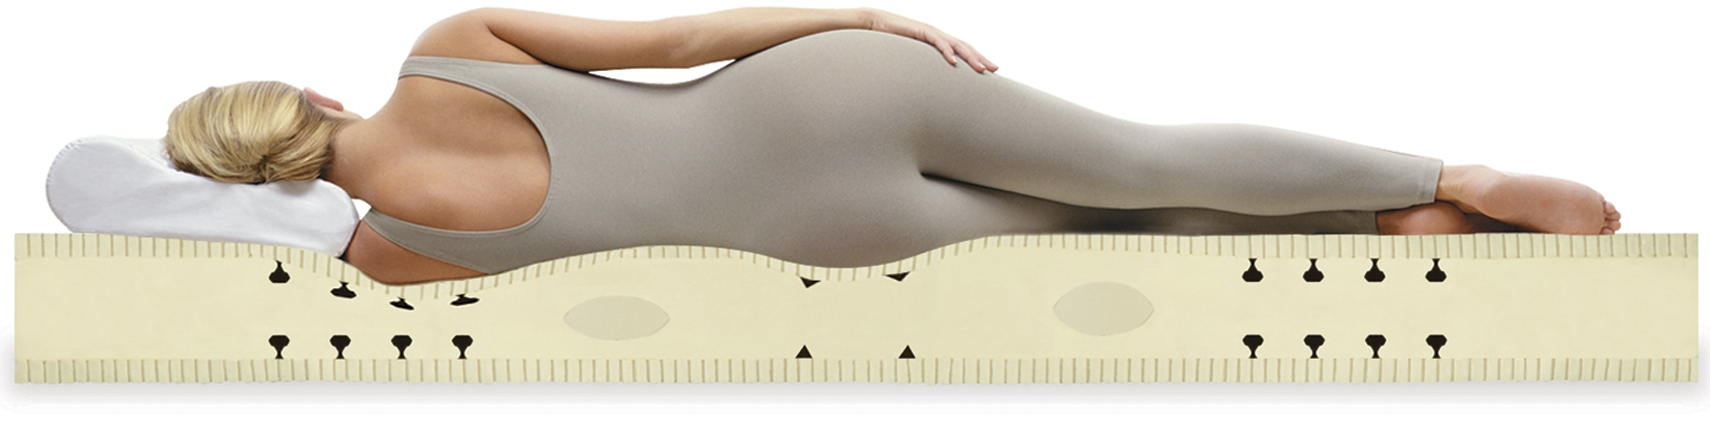 Royal-Pedic's innovative seven zone latex core